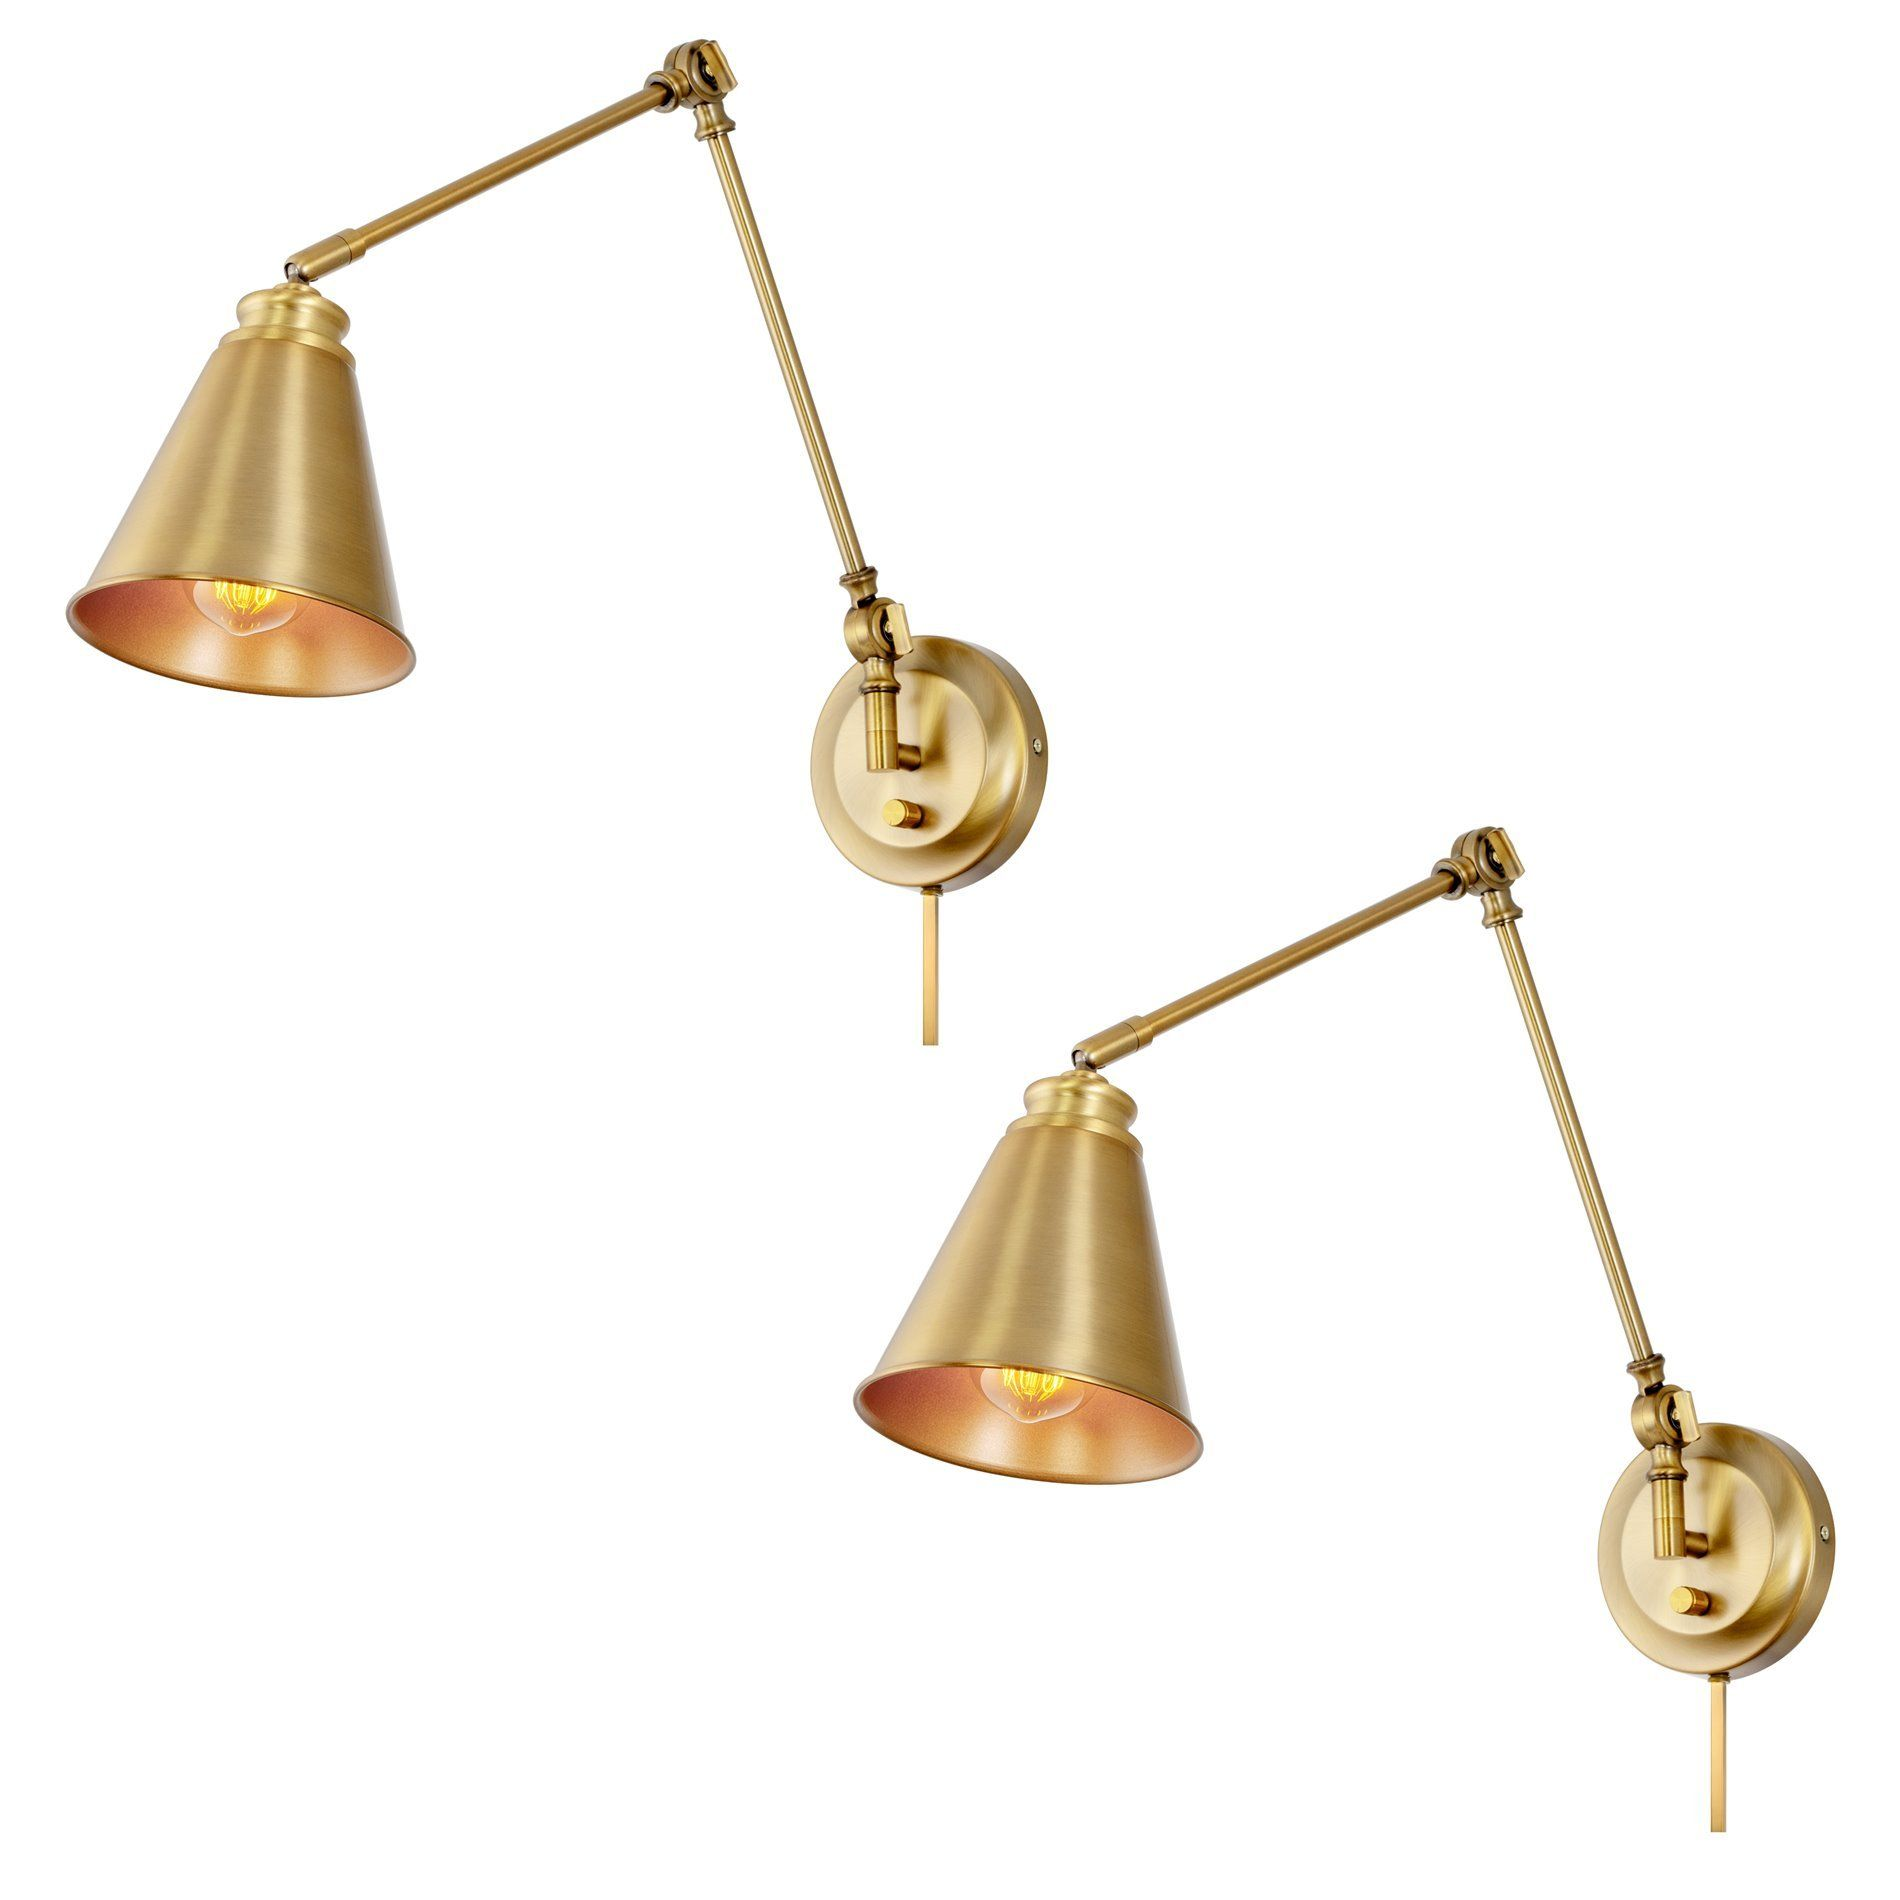 Kira Home Ellis 18 Vintage Industrial Swing Arm Wall Lamp Plug In Wall Mount Cord Covers Warm Brass Finish 2 Pack In 2021 Swing Arm Wall Lamps Wall Lamp Swing Arm Wall Sconce